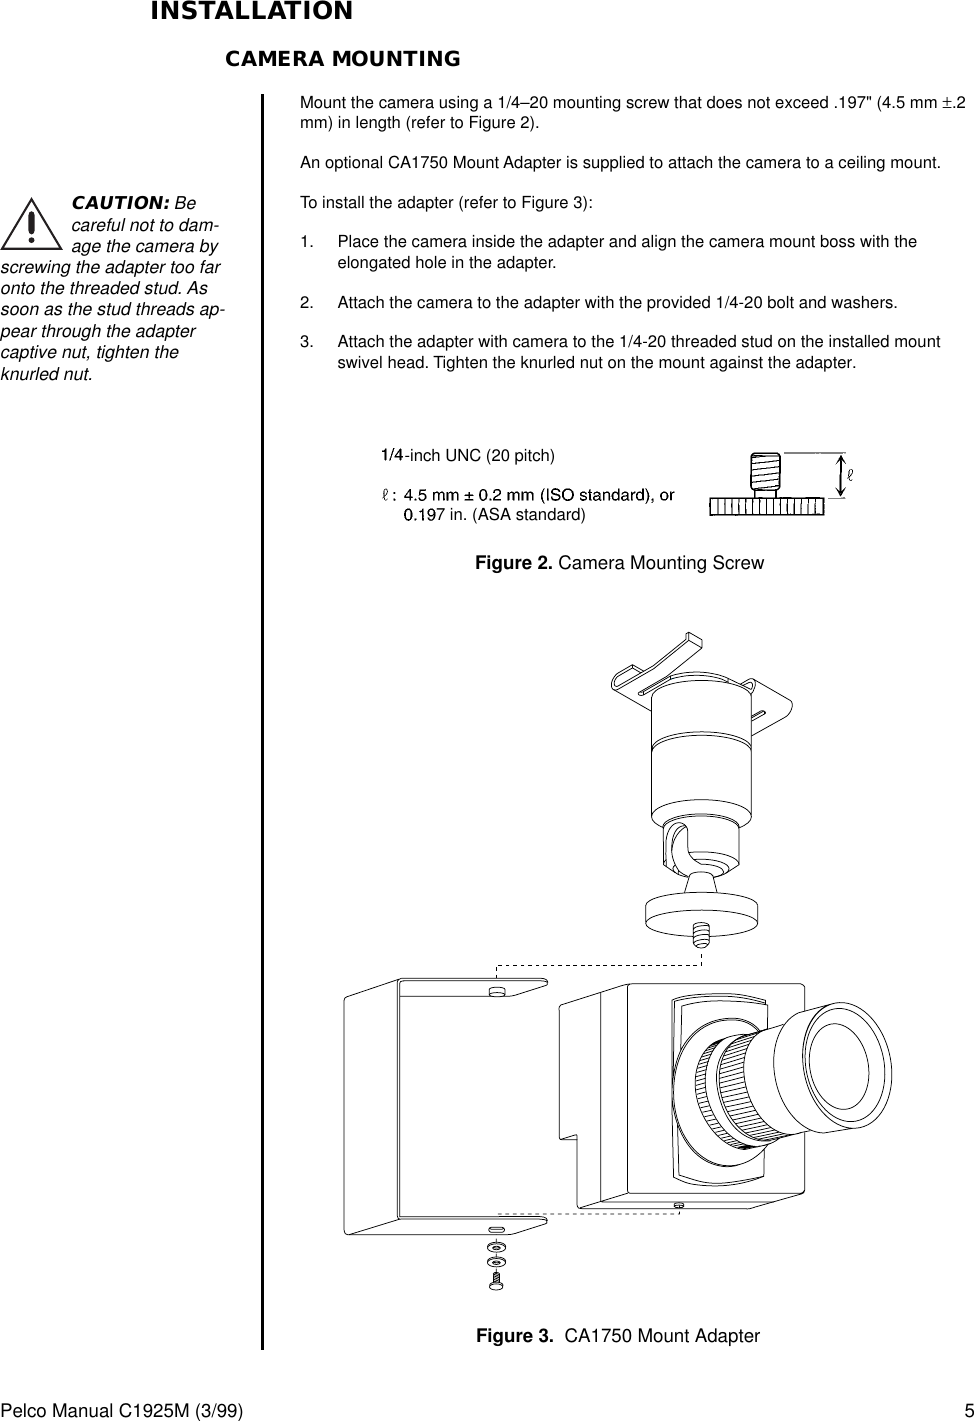 Pelco Ccd Color Camera Ccc4000 Users Manual Series Wiring Diagram Page 5 Of 12